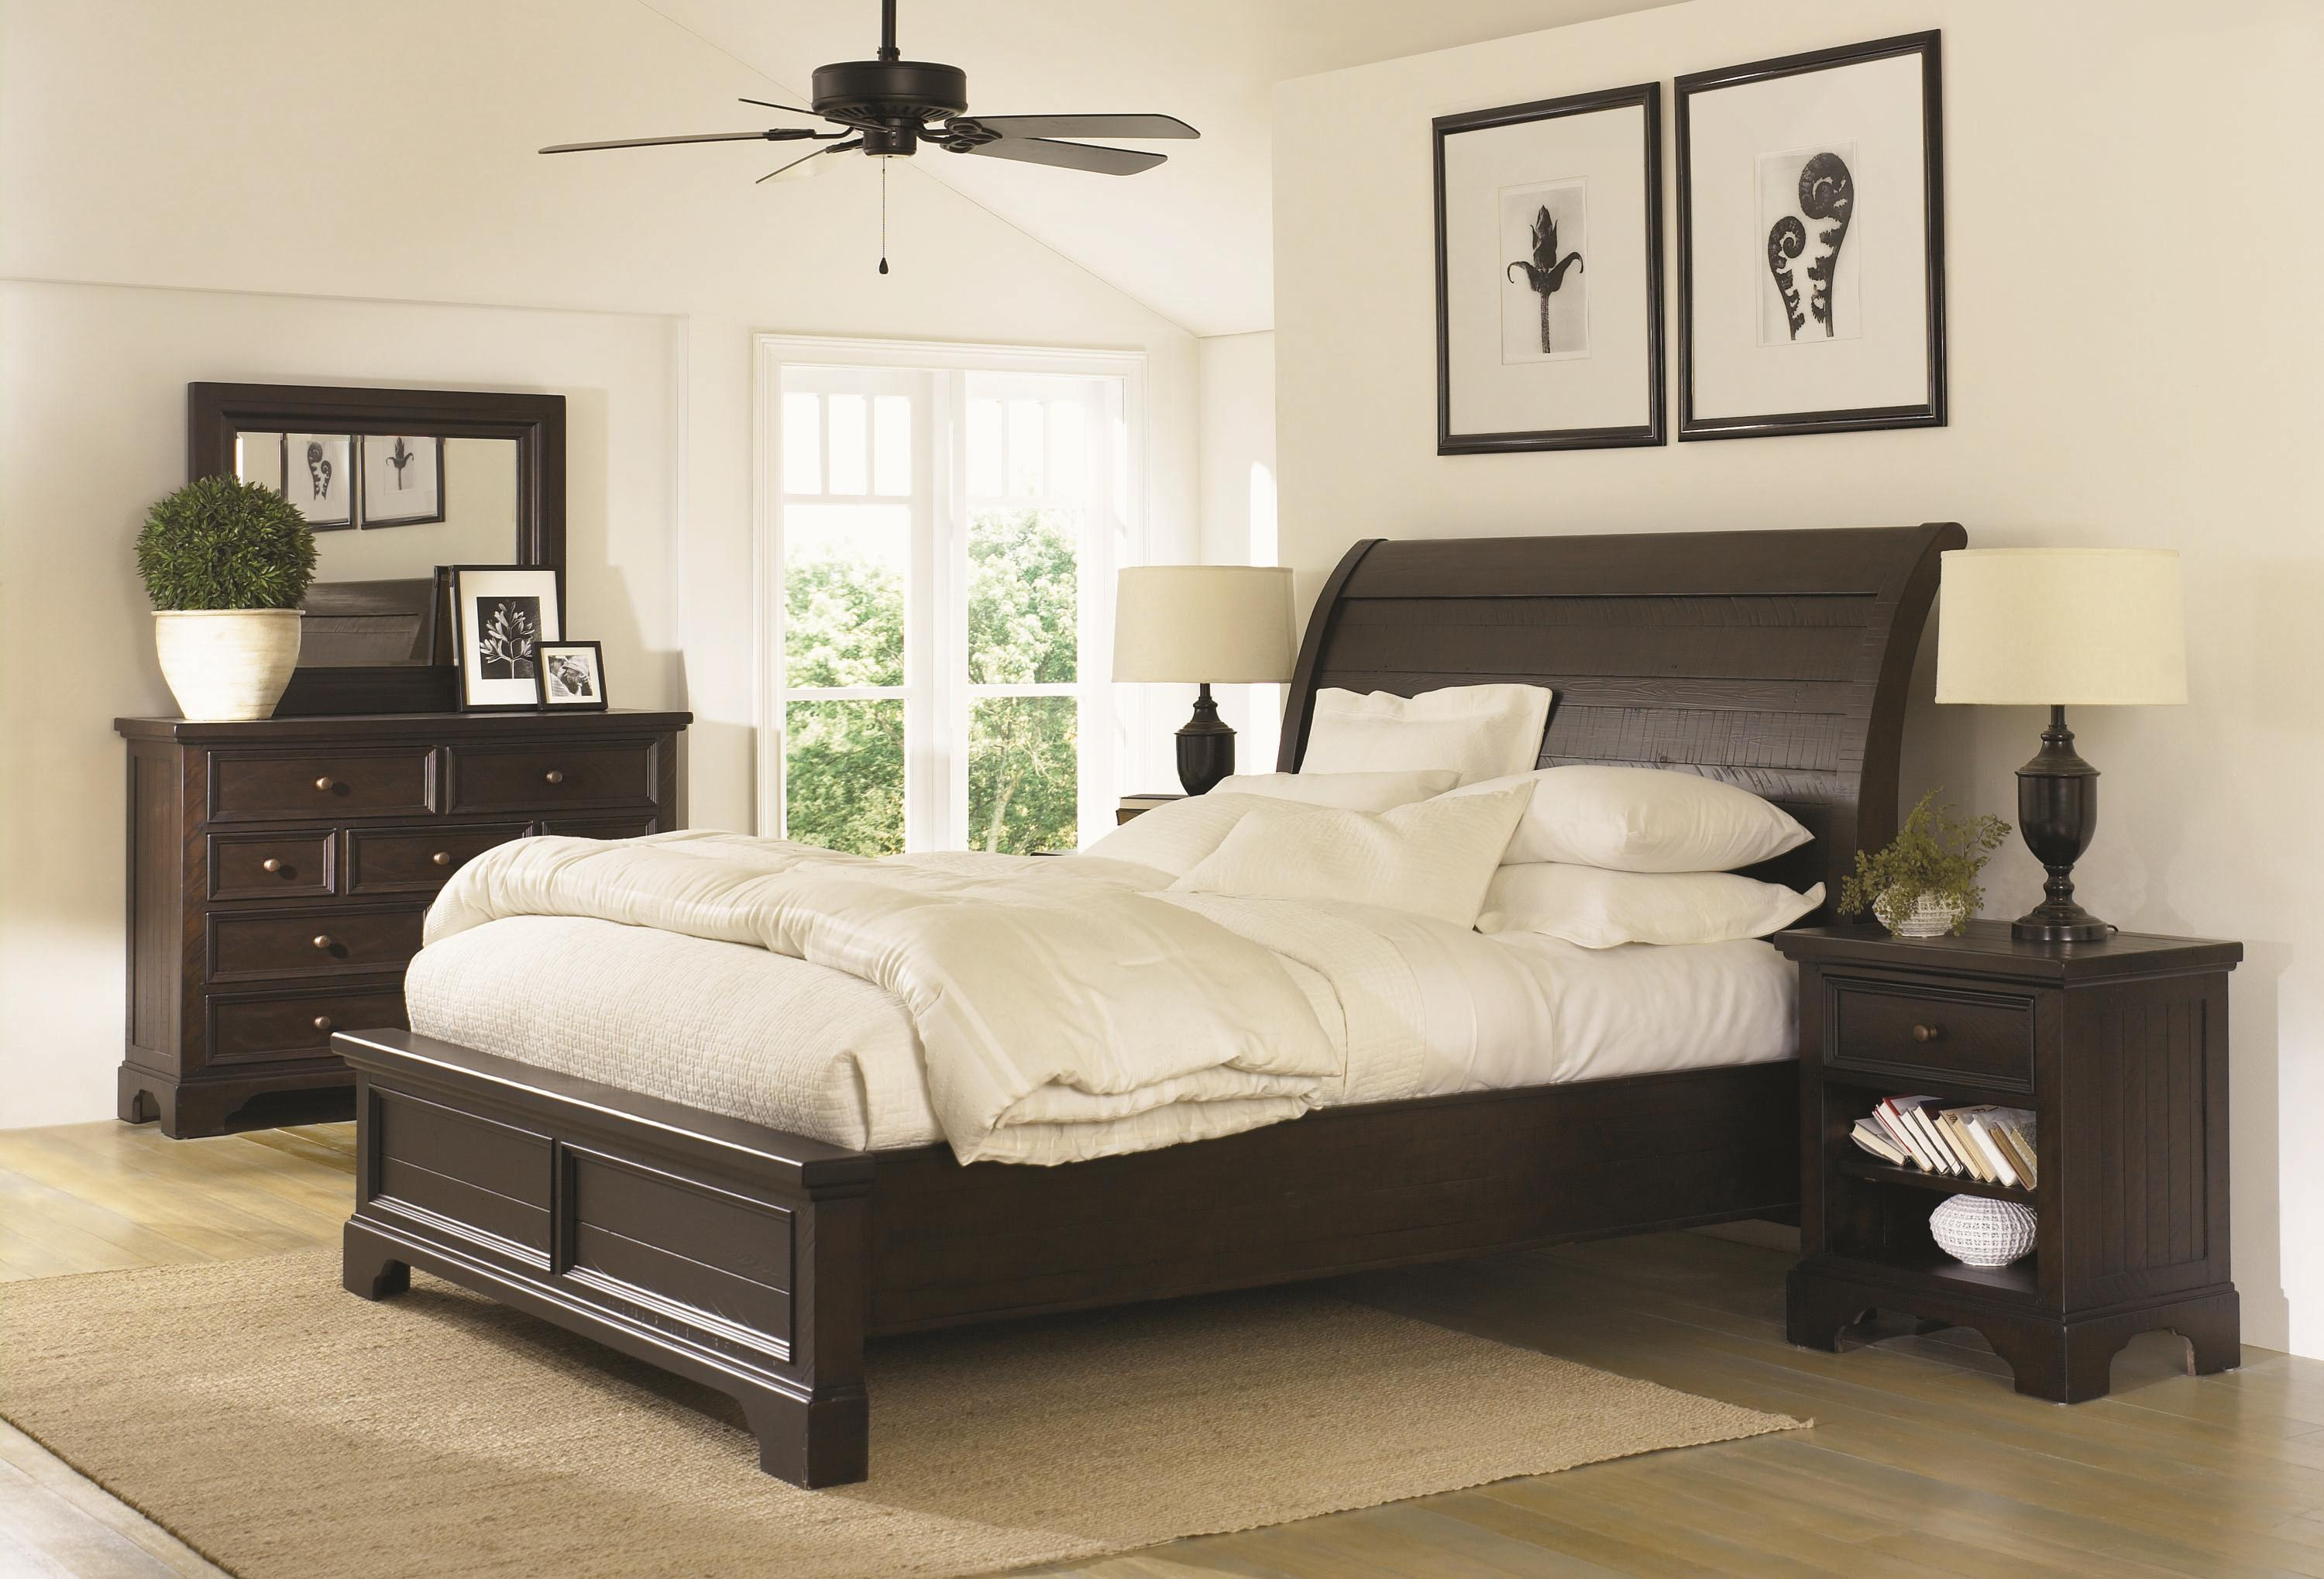 California King Size Sleigh Bed With Adjustable Bed Slats By Aspenhome Wolf And Gardiner Wolf